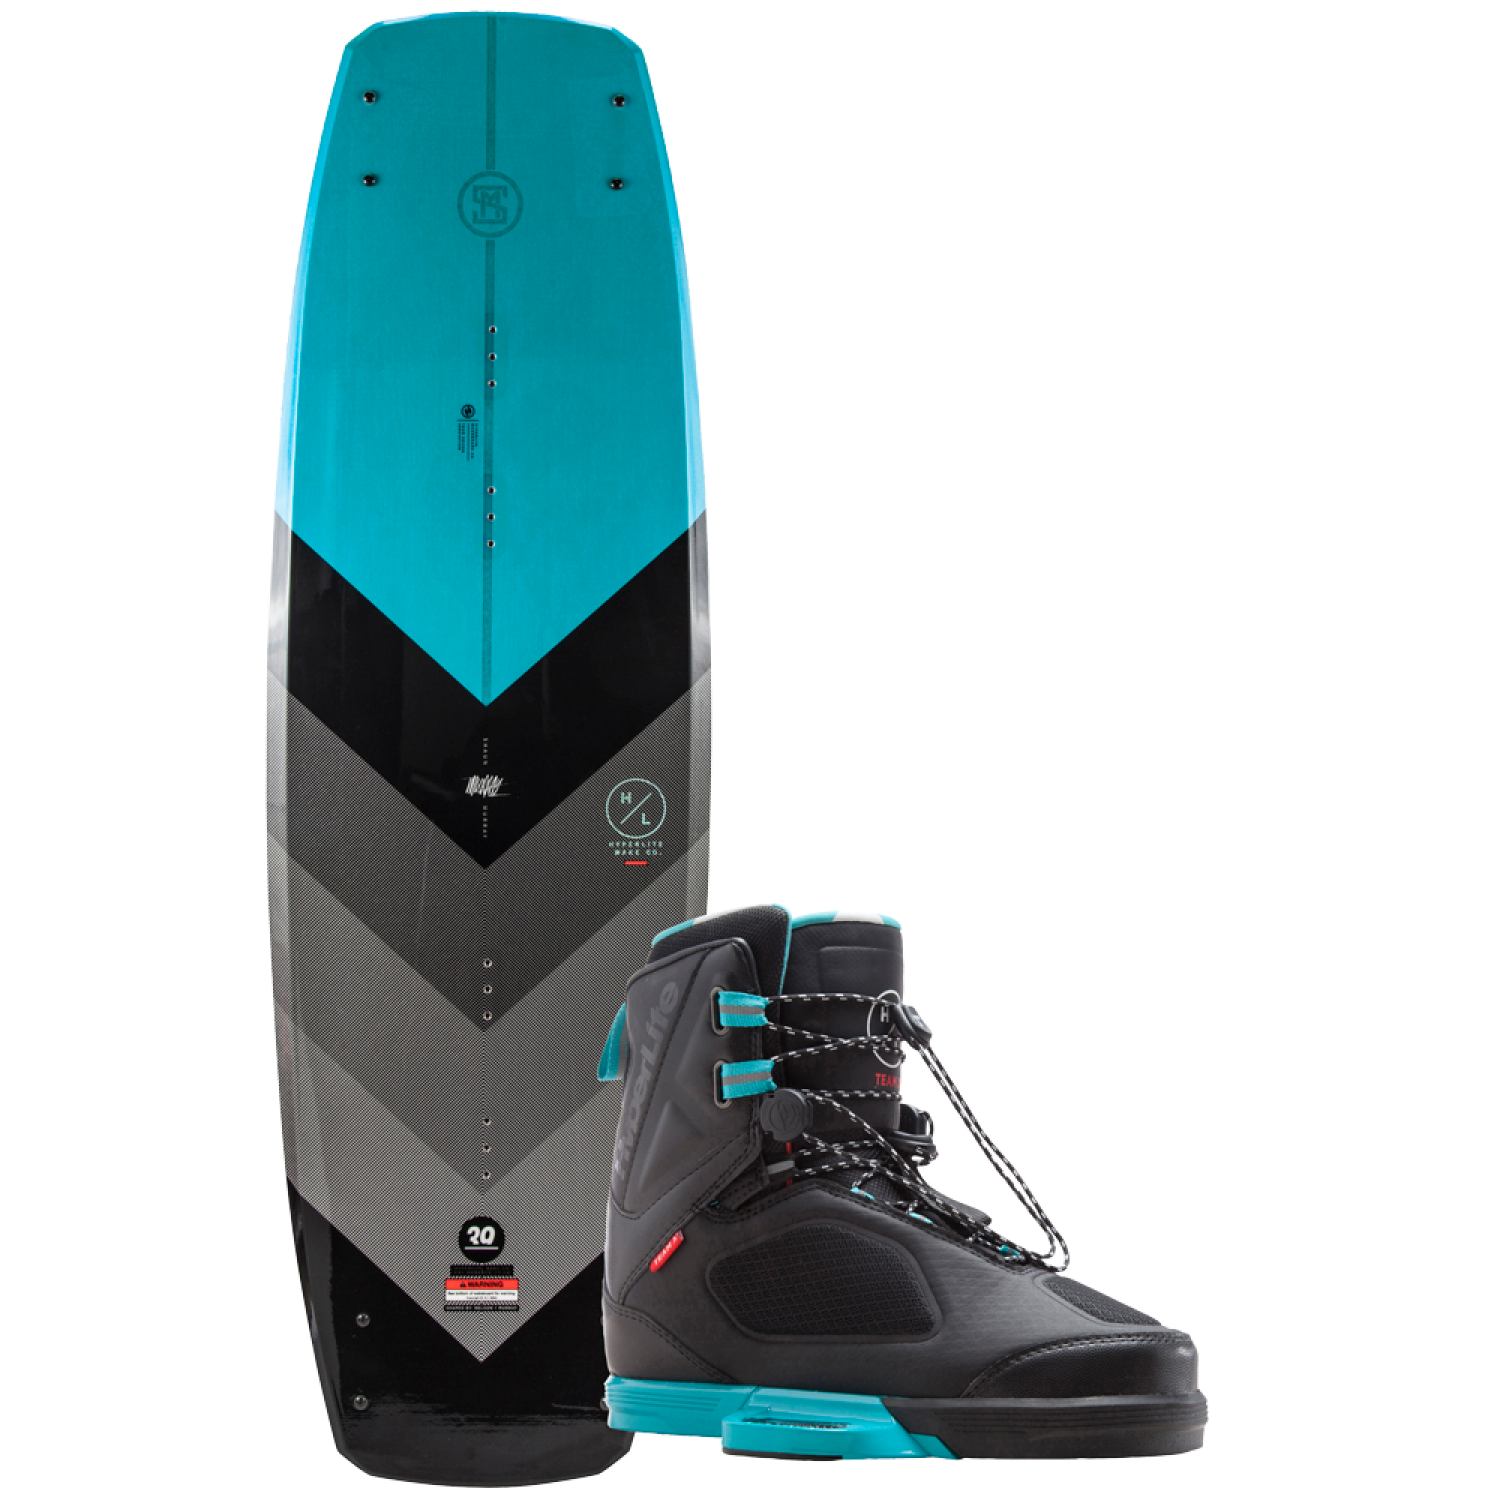 2018 Hyperlite MURRAY w/ TEAM X Bindings - Guys pkg